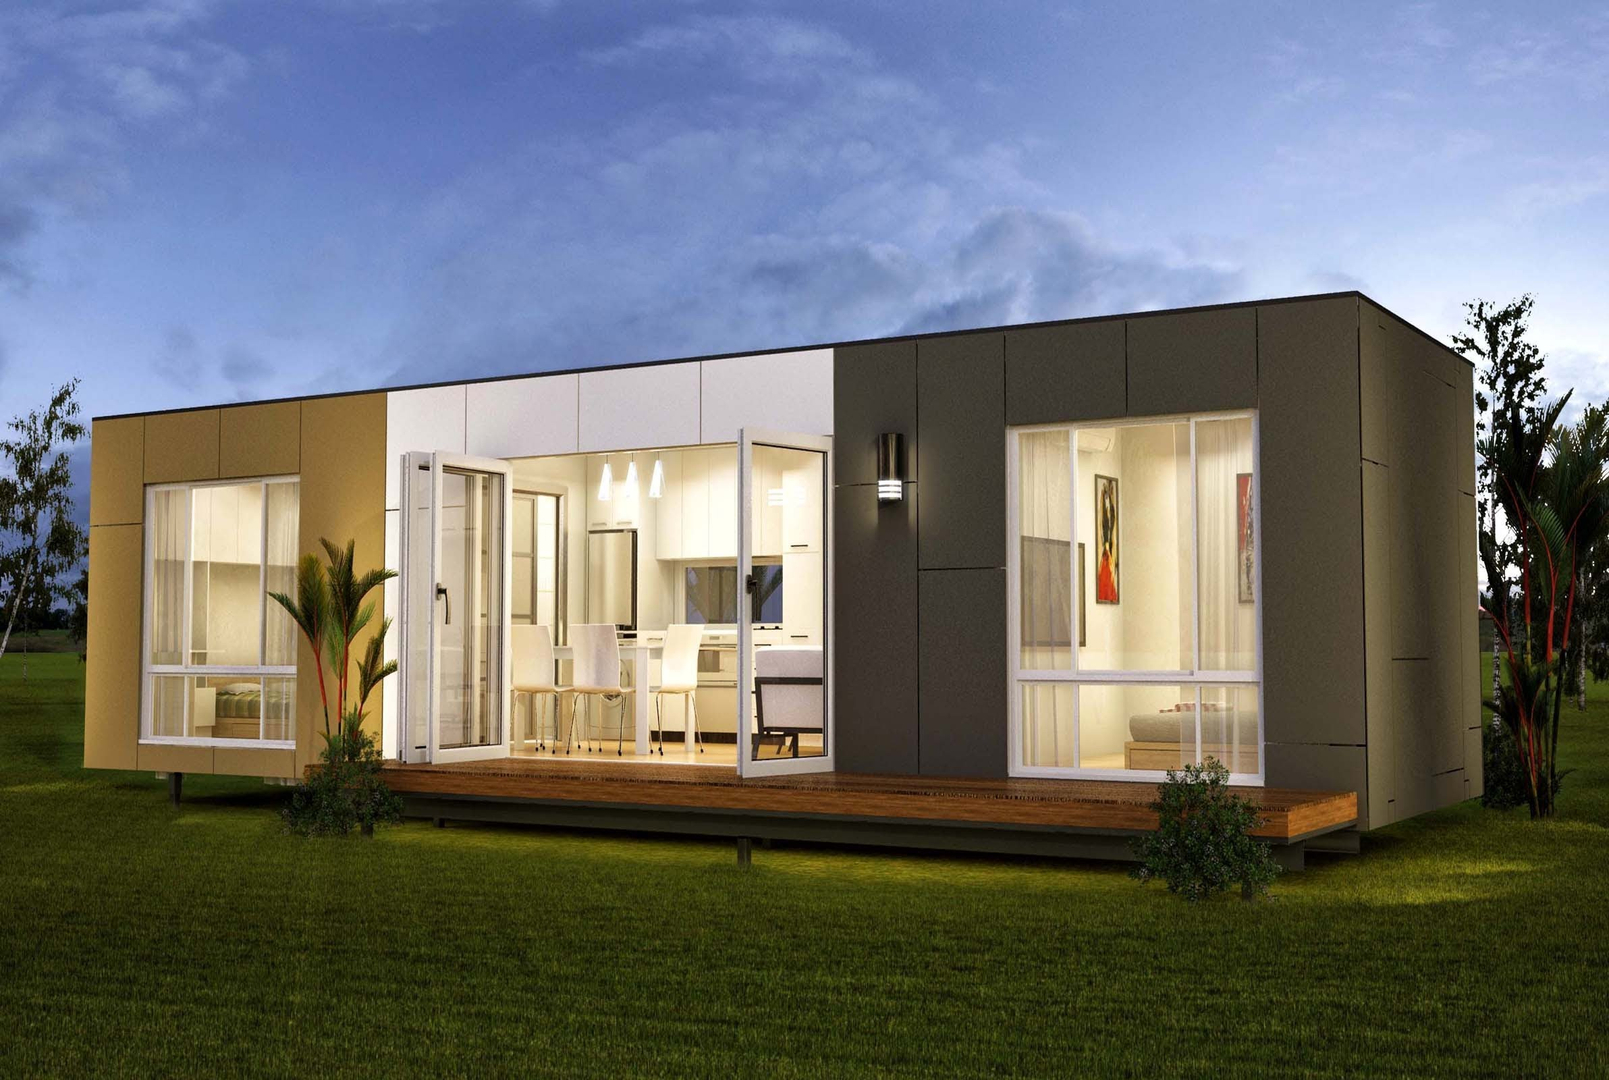 6c6fc5f1c8e5876e757d64eebd01a160accesskeyida22e9699ee9eb1c3ac8ddisposition0alloworigin1 - Containers As Homes